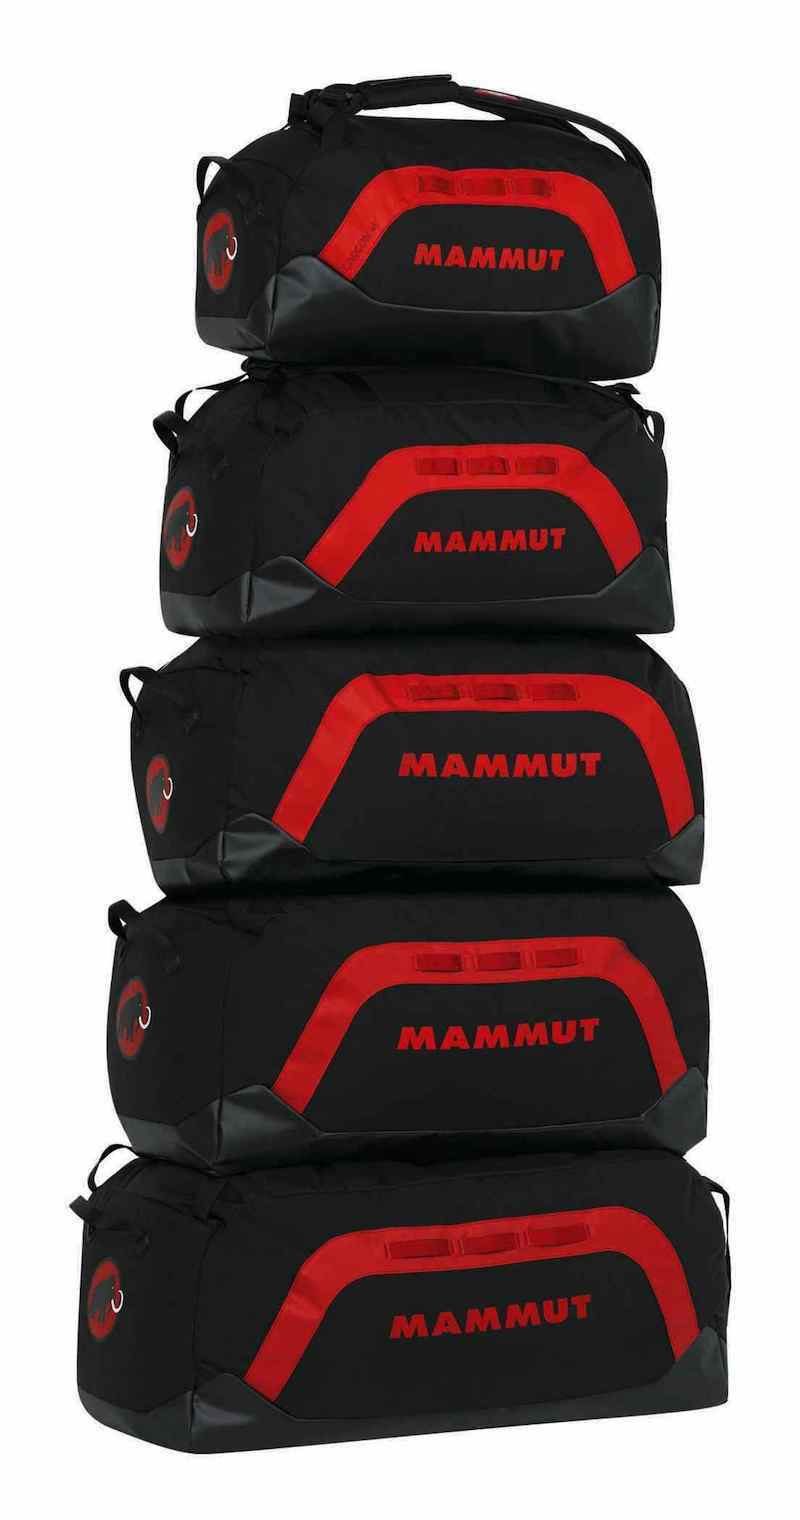 Mammut Cargon 90L Bag - Ideal for Skiing, Snowboarding, Travel, Expeditions